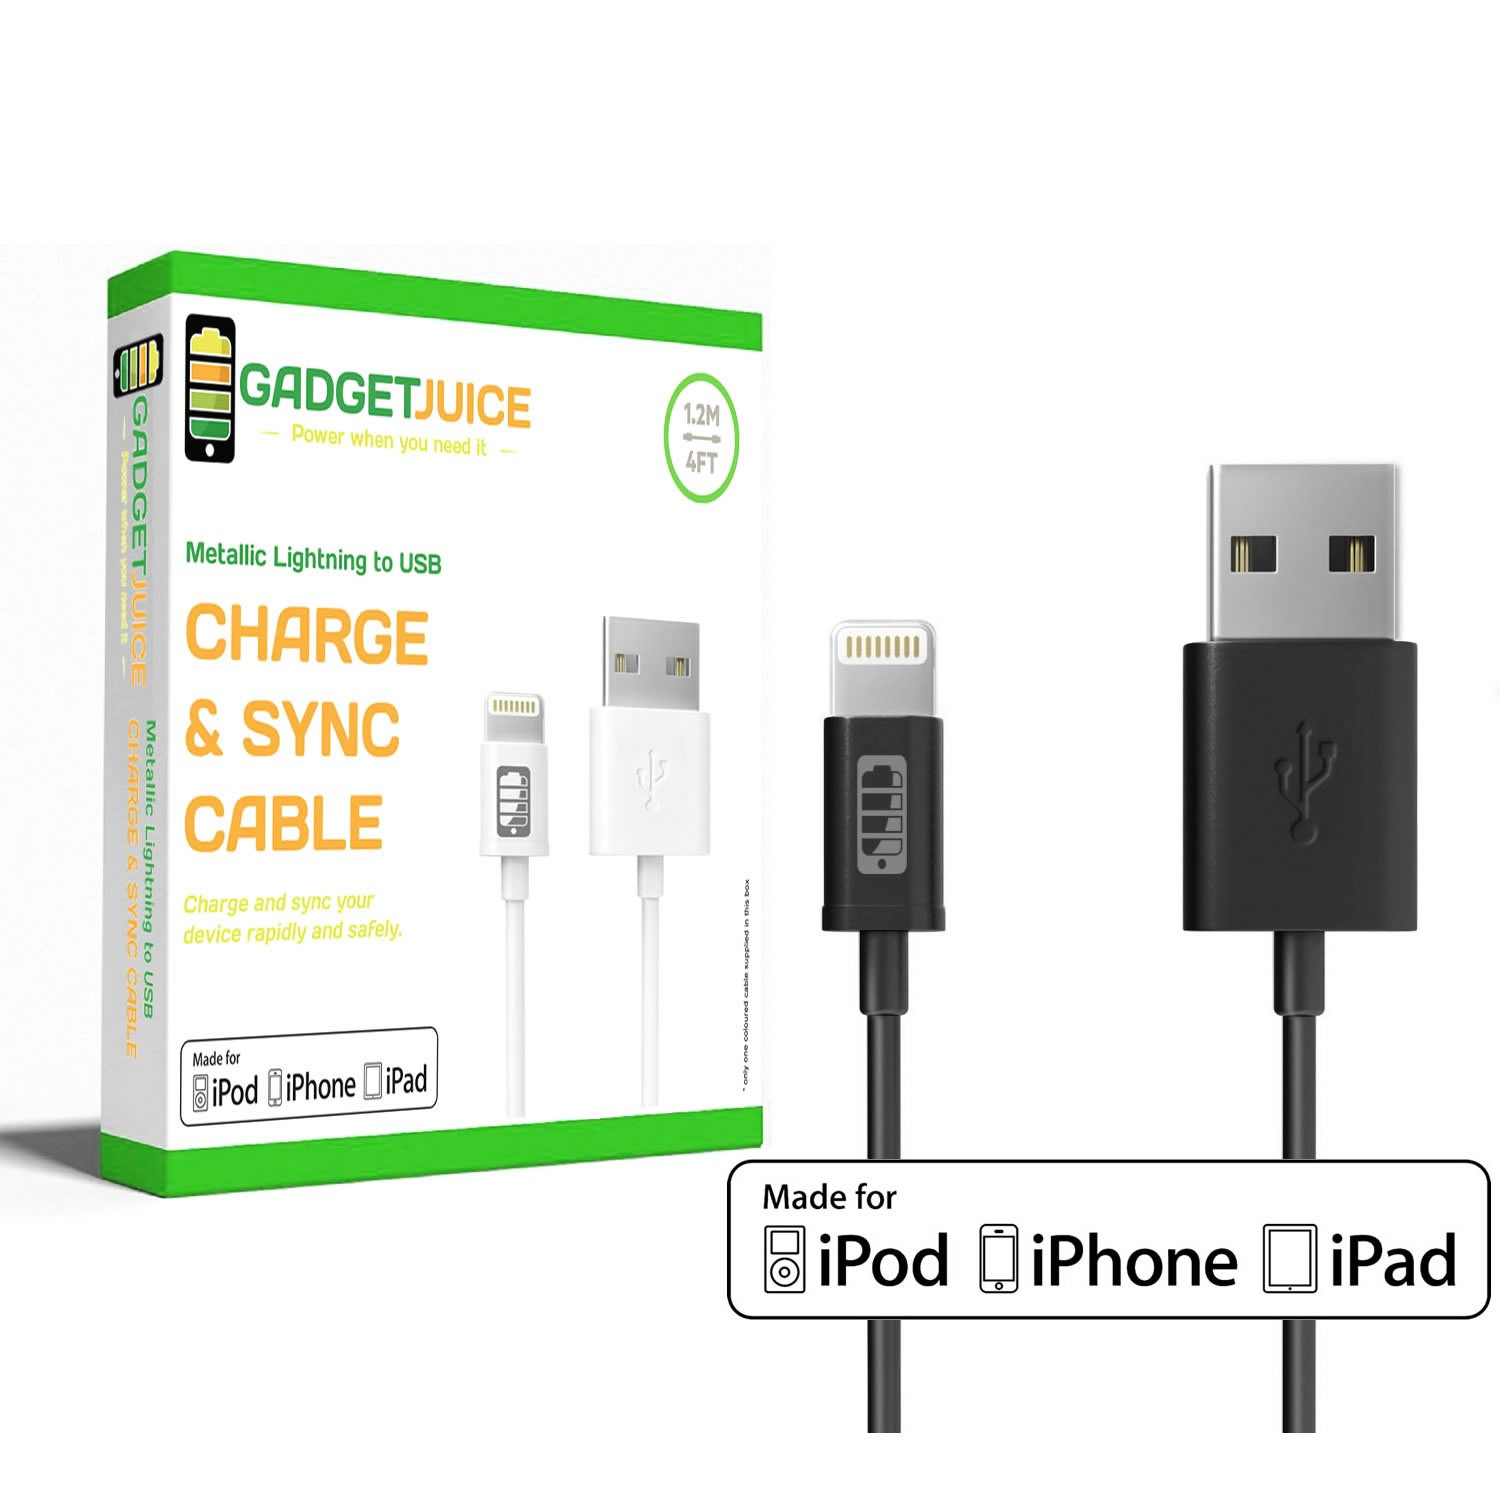 Iphone 4 Usb Wiring Diagram   Wiring Diagram - Iphone 6 Usb Cable Wiring Diagram